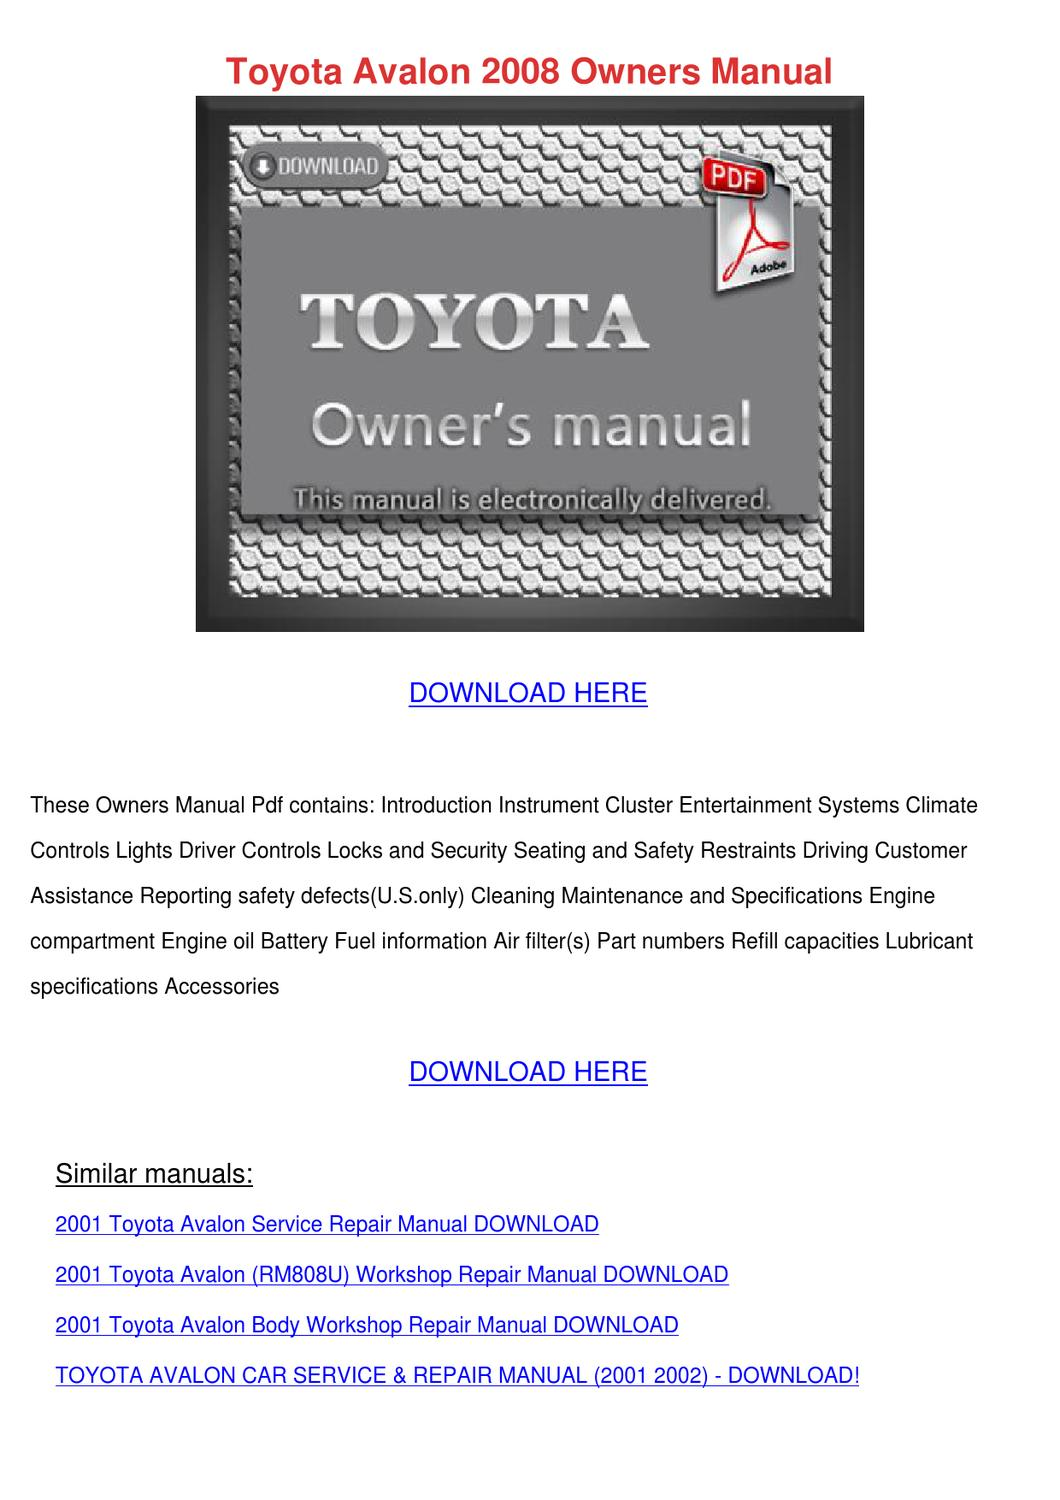 toyota avalon 2008 owners manual by winnievenegas issuu. Black Bedroom Furniture Sets. Home Design Ideas